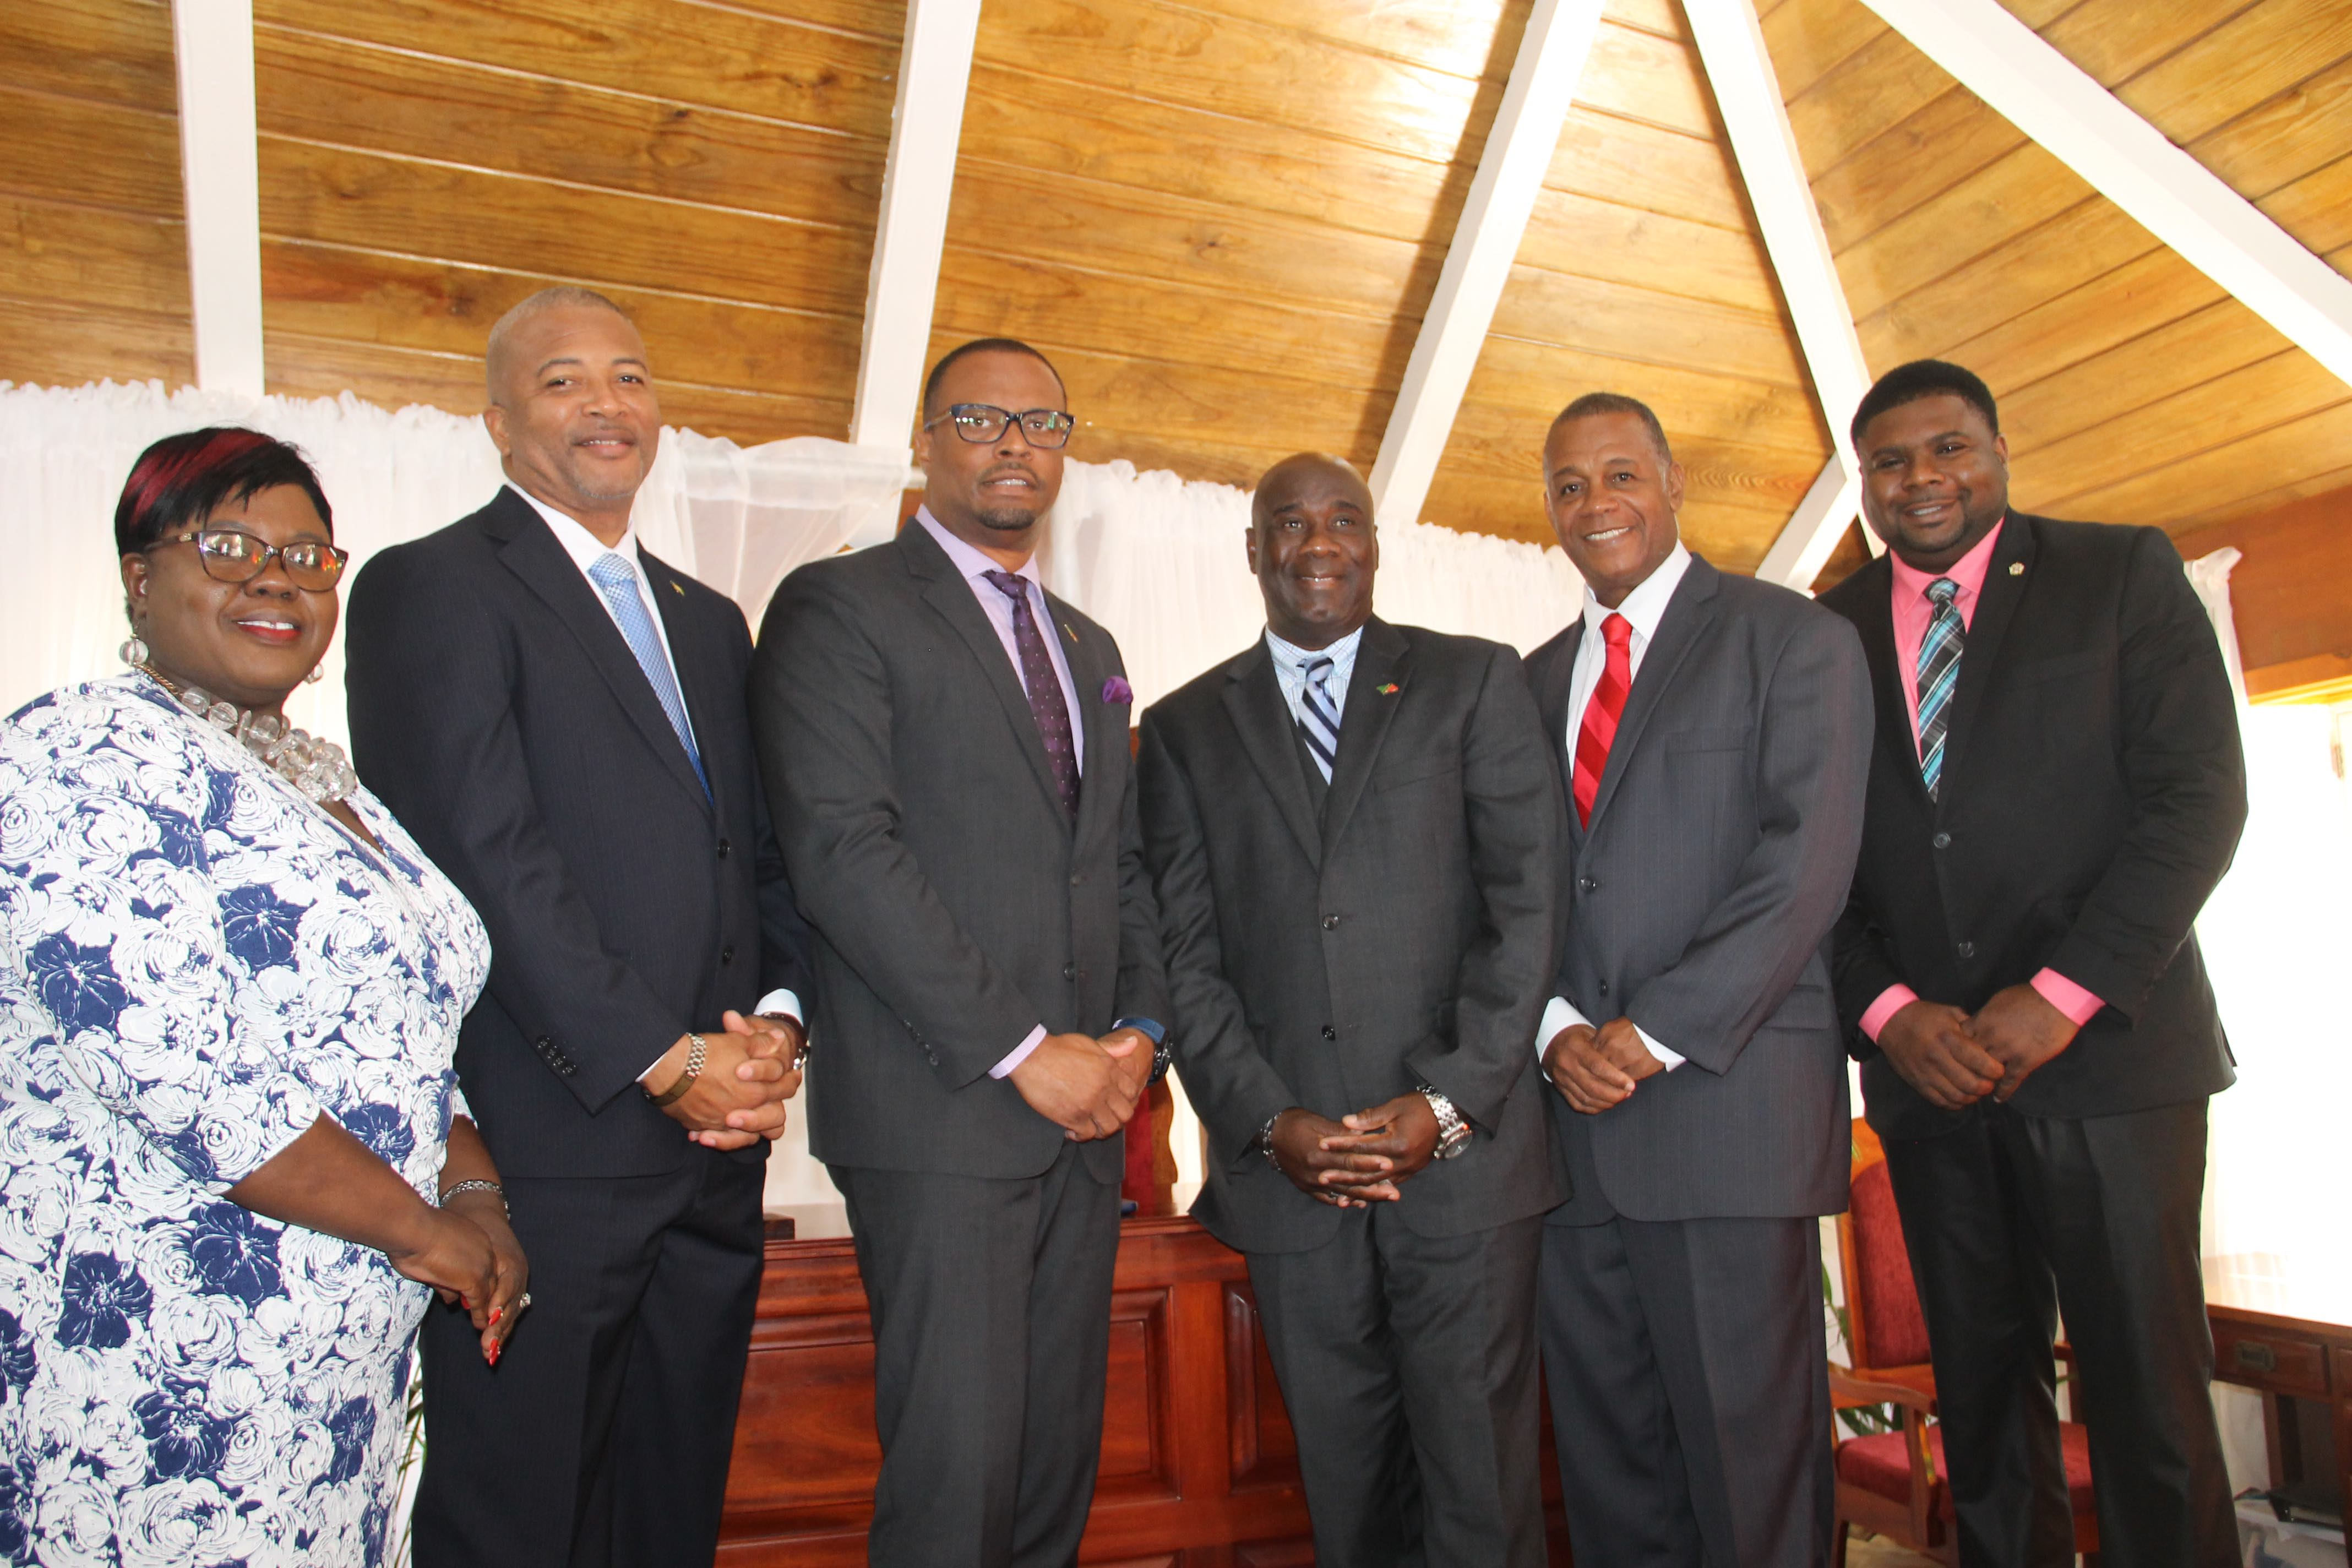 Cabinet of Ministers in the Nevis Island Administration (l-r) Hon. Hazel Brandy-Williams; Hon. Spencer Brand; Premier of Nevis, Hon. Mark Brantley; Deputy Premier Hon. Alexis Jeffers; Hon. Eric Evelyn; and Hon. Troy Liburd (file photo)